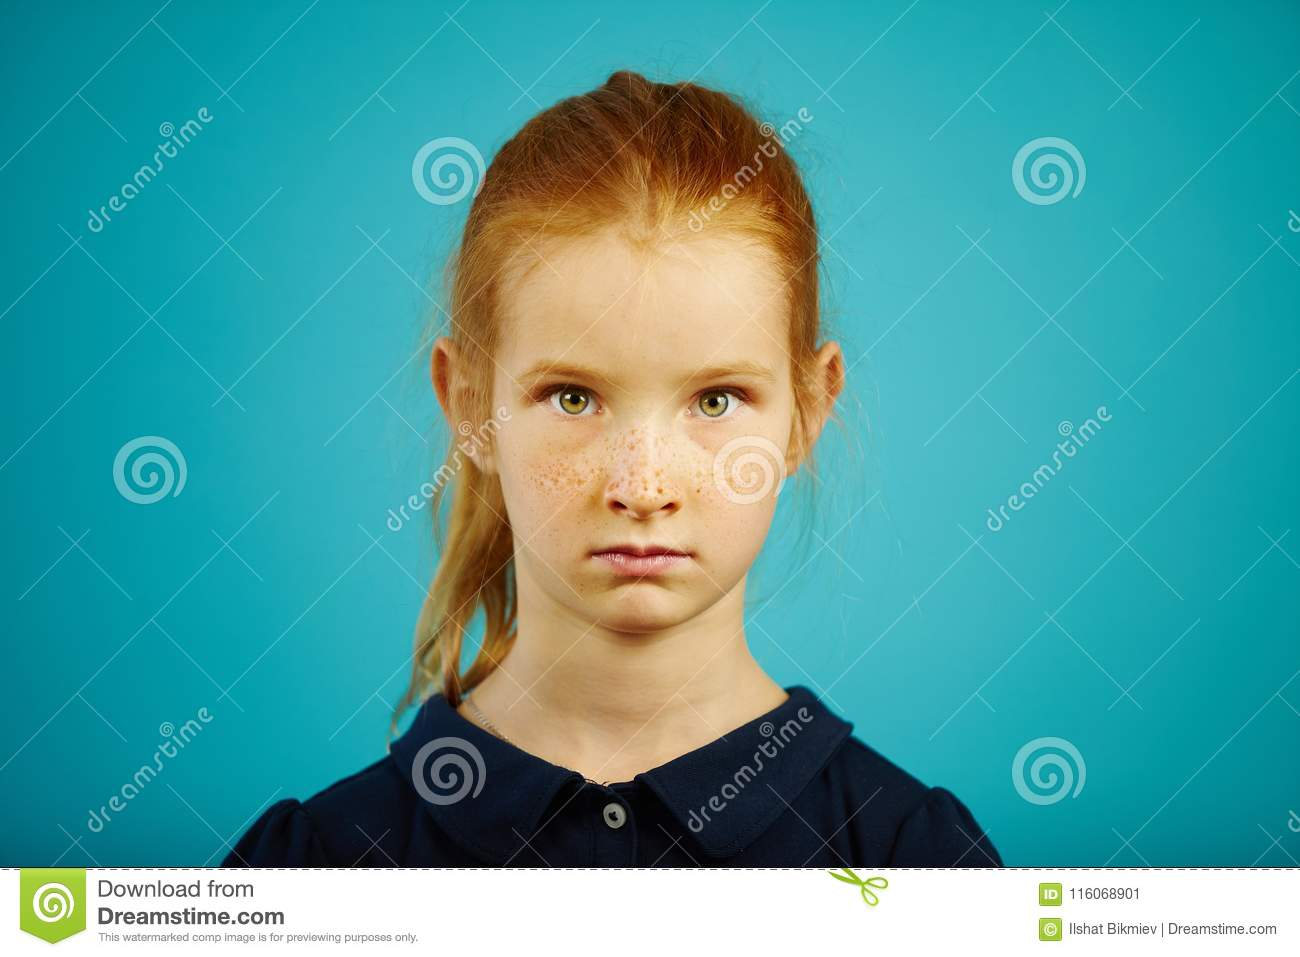 portrait of serious seven year old girl with freckles and red hair